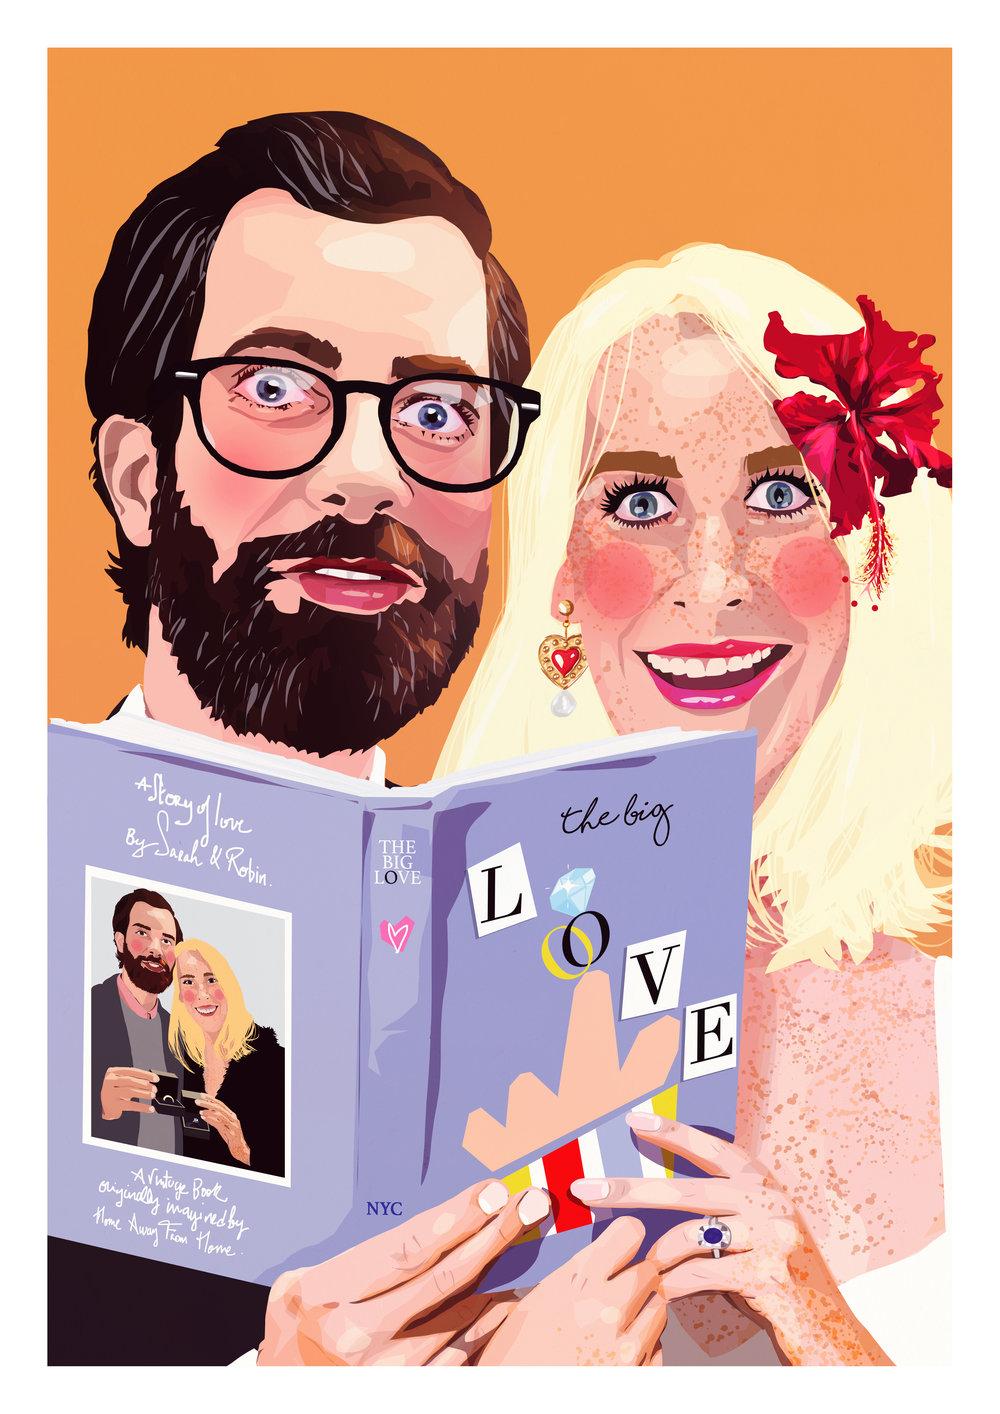 Couple portrait print on giclee high quality paper commissionned as a wedding gift.